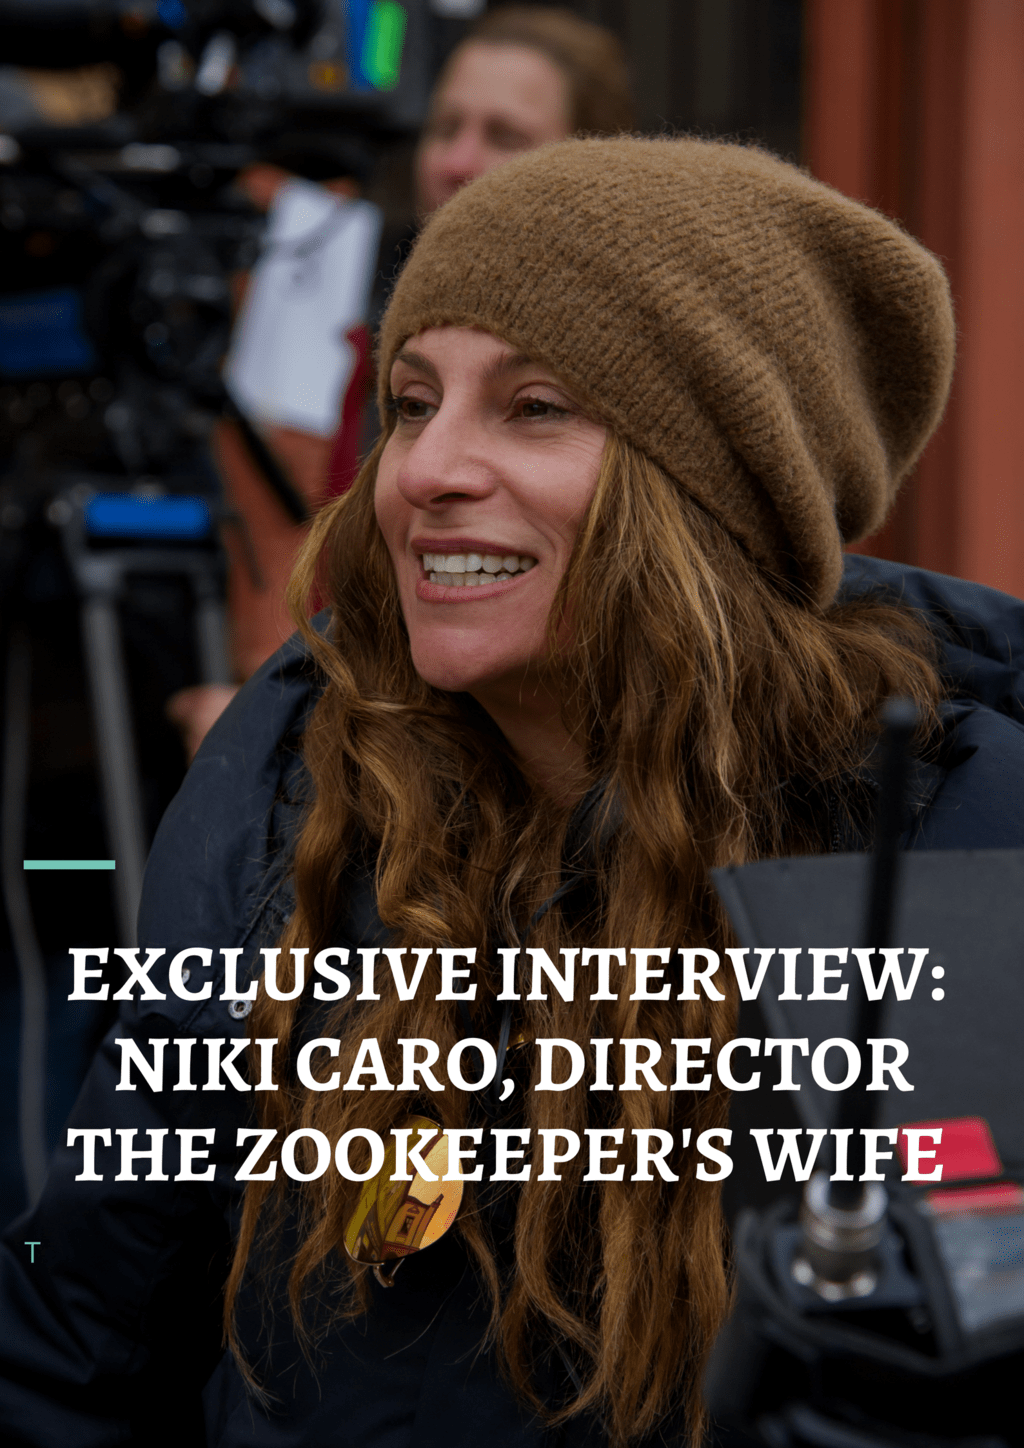 Focus Features sent contributor Anne Parris from Not a Supermom to New York City to screen the new movie, The Zookeeper's Wife, and to interview director Niki Caro.